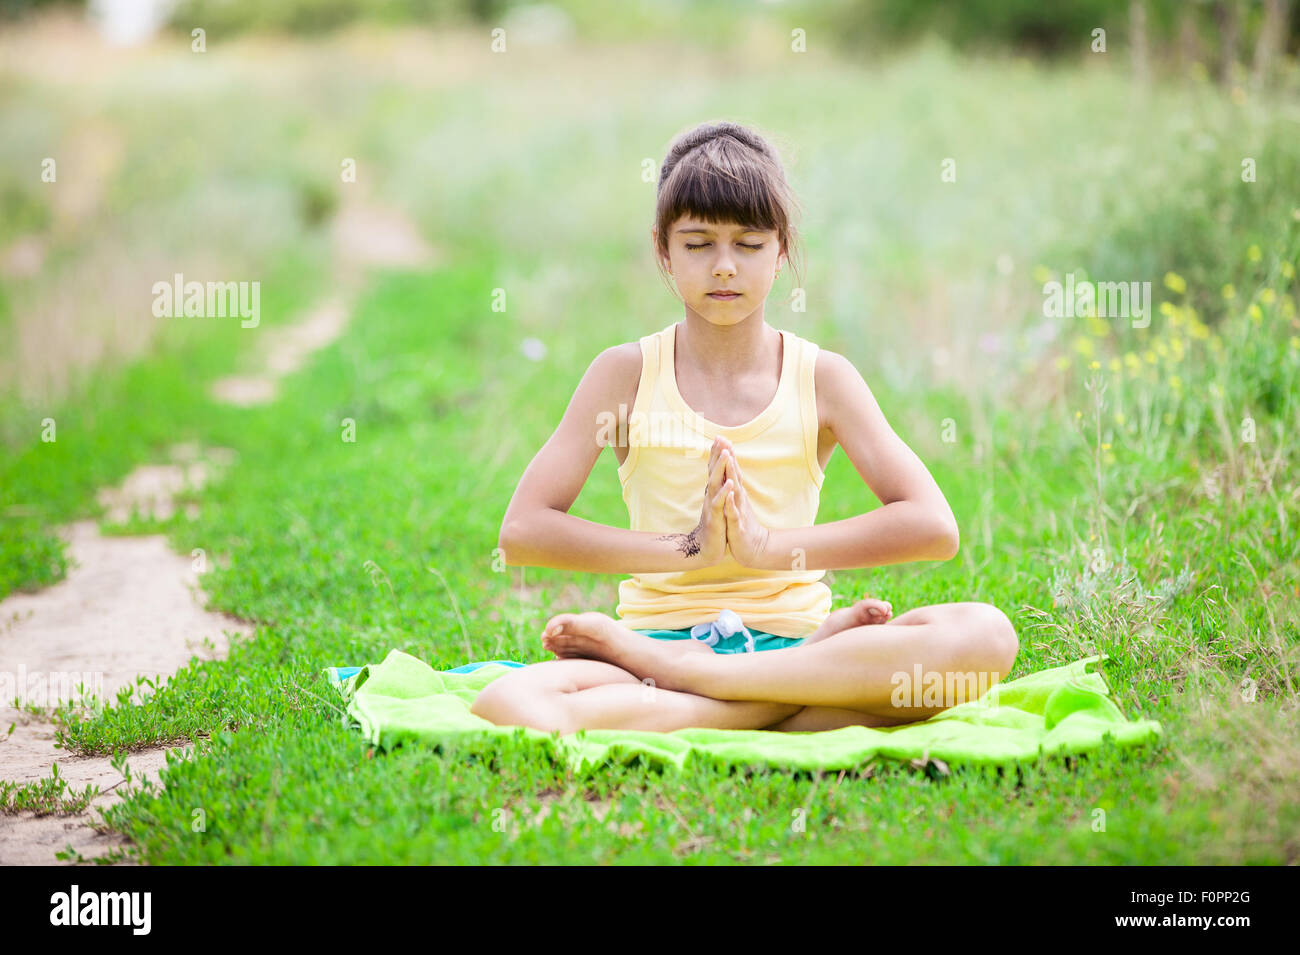 Stock Photo of Nude woman sitting in lotus position, eyes